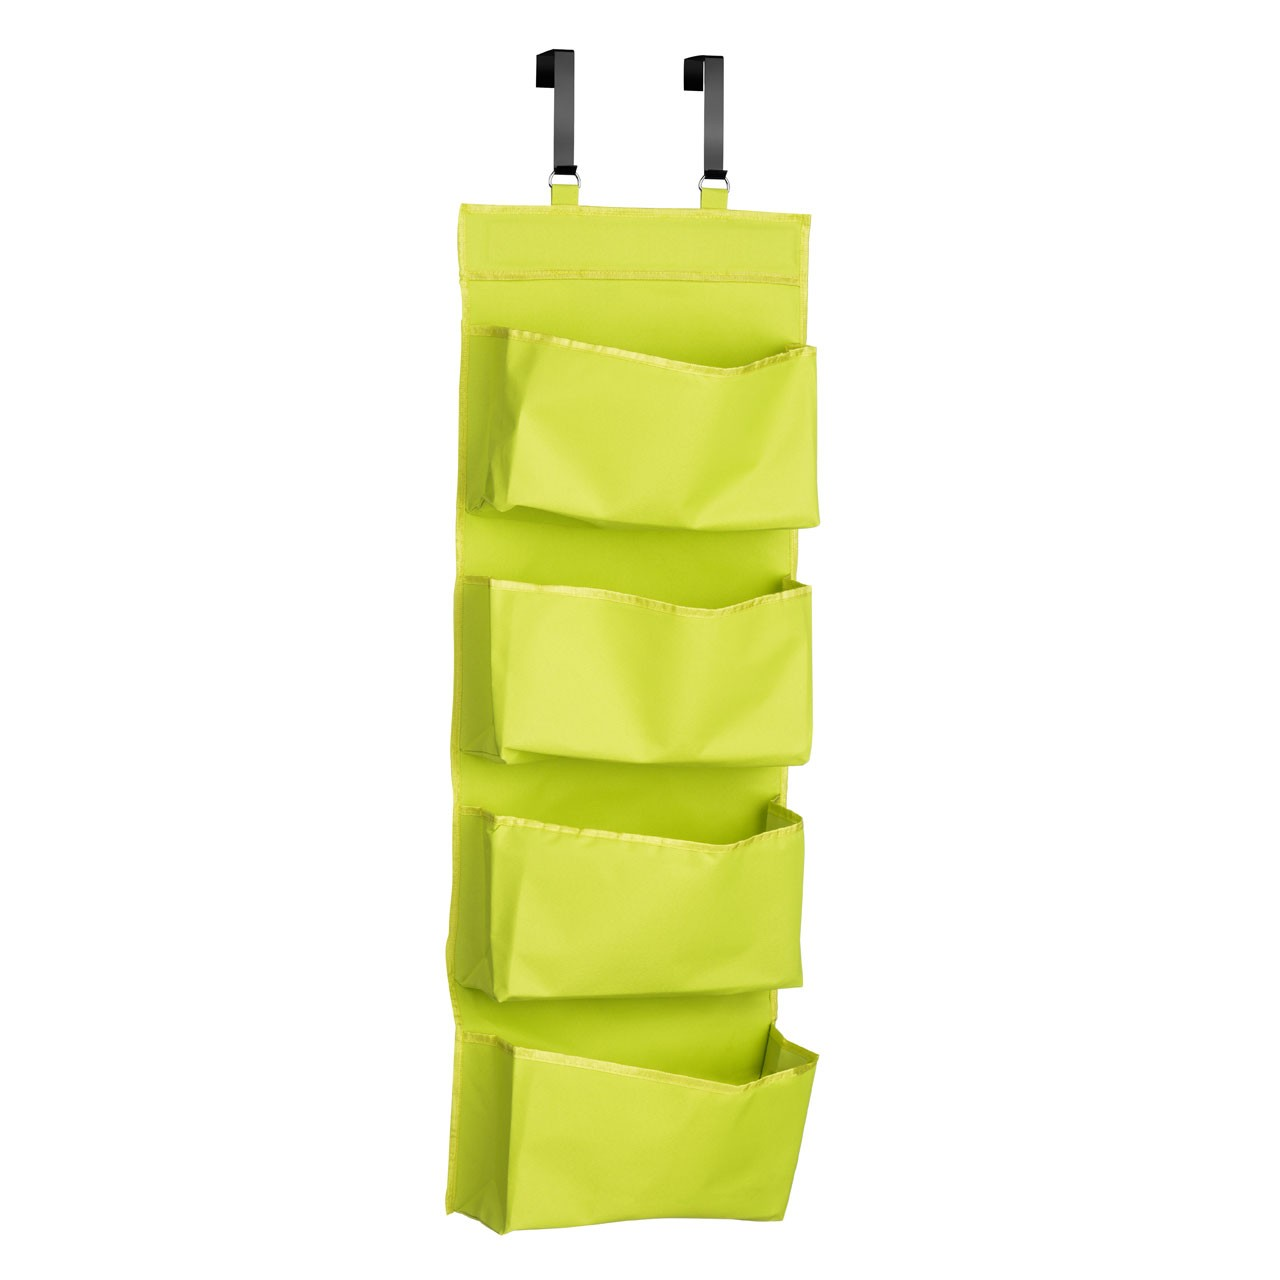 Prime Furnishing 4 Tier Over Door Hanging Organiser - Lime Green